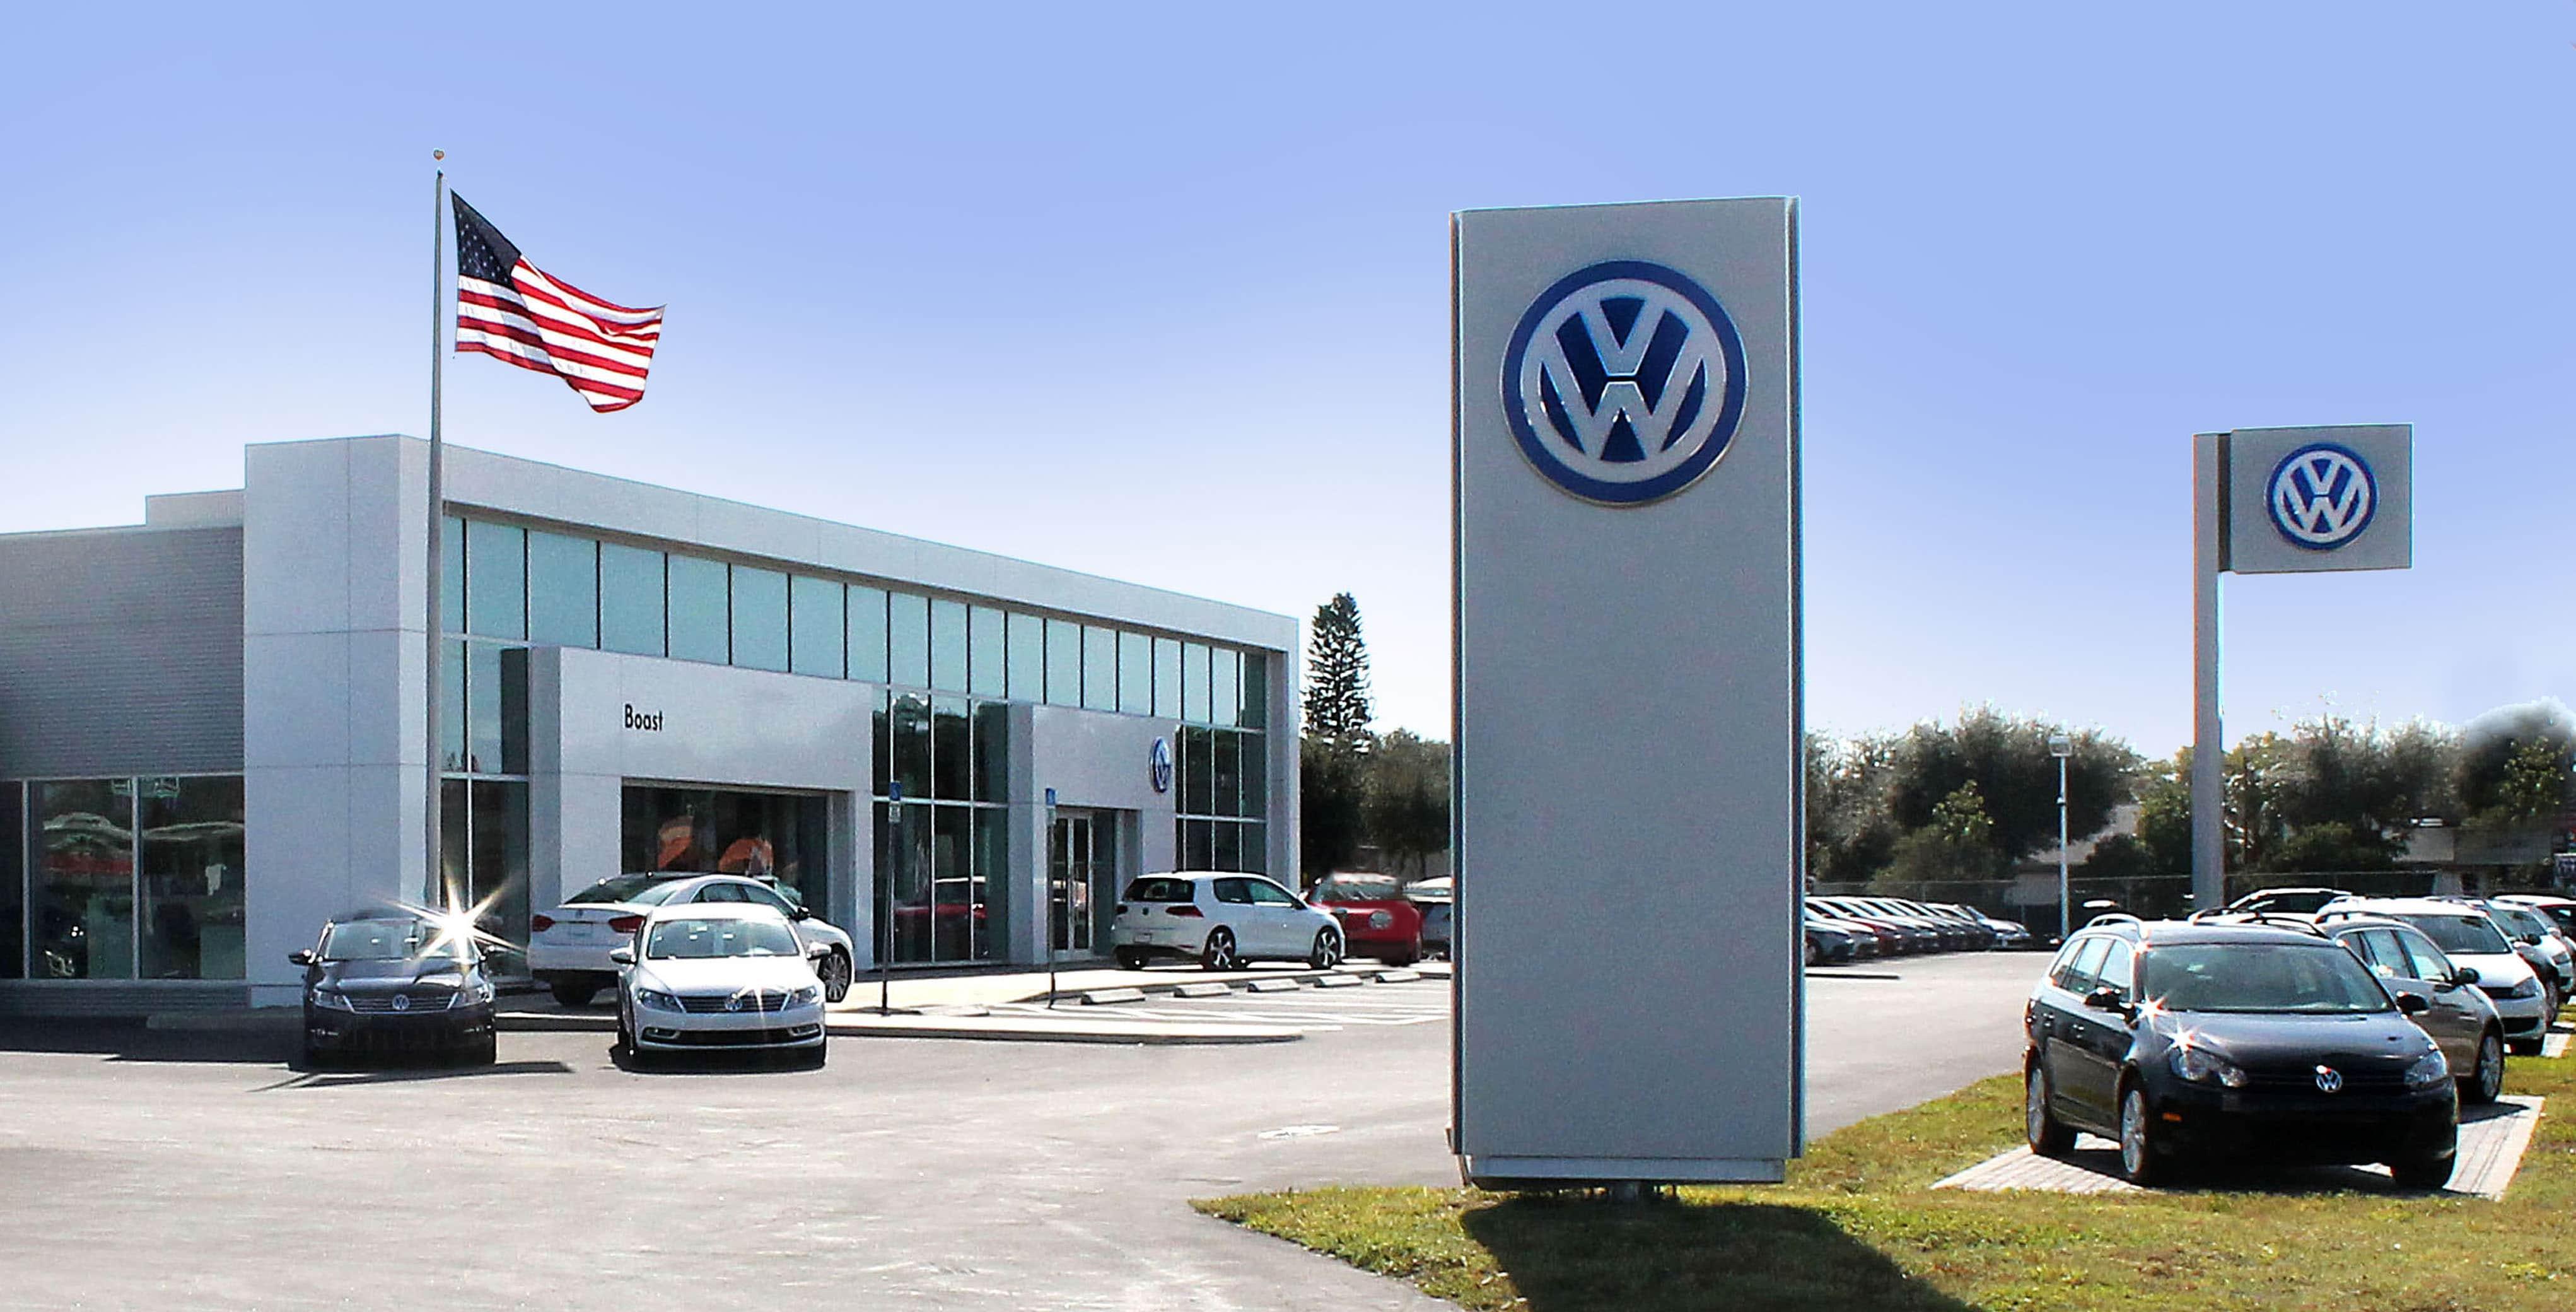 vw-volkswagen-dealership